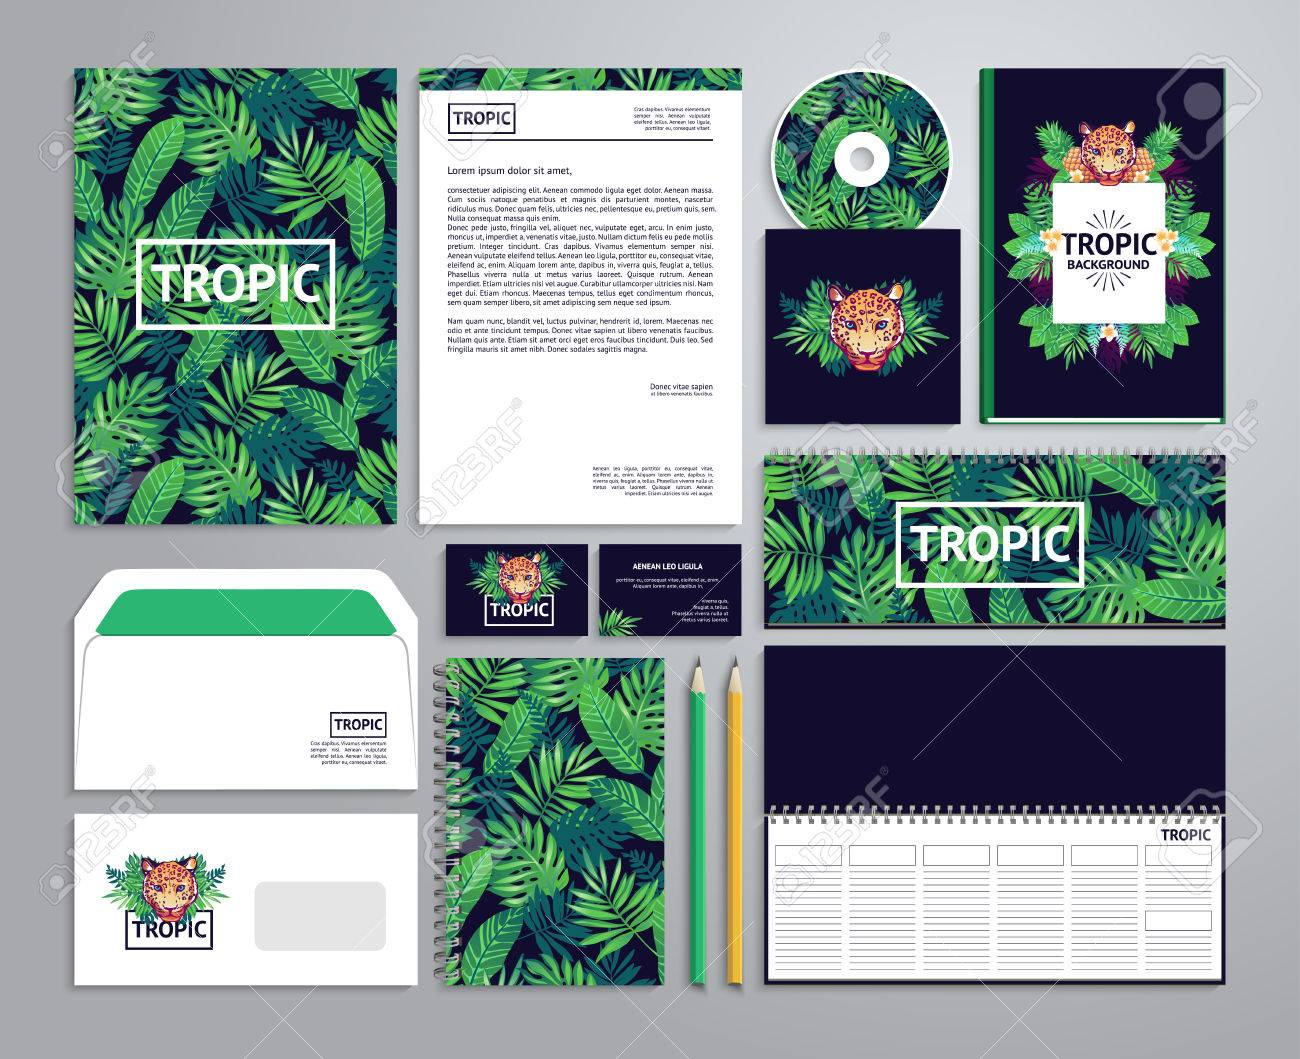 Corporate identity templates in tropical style with notepad, disk, package, label, envelope etc. - 52783301